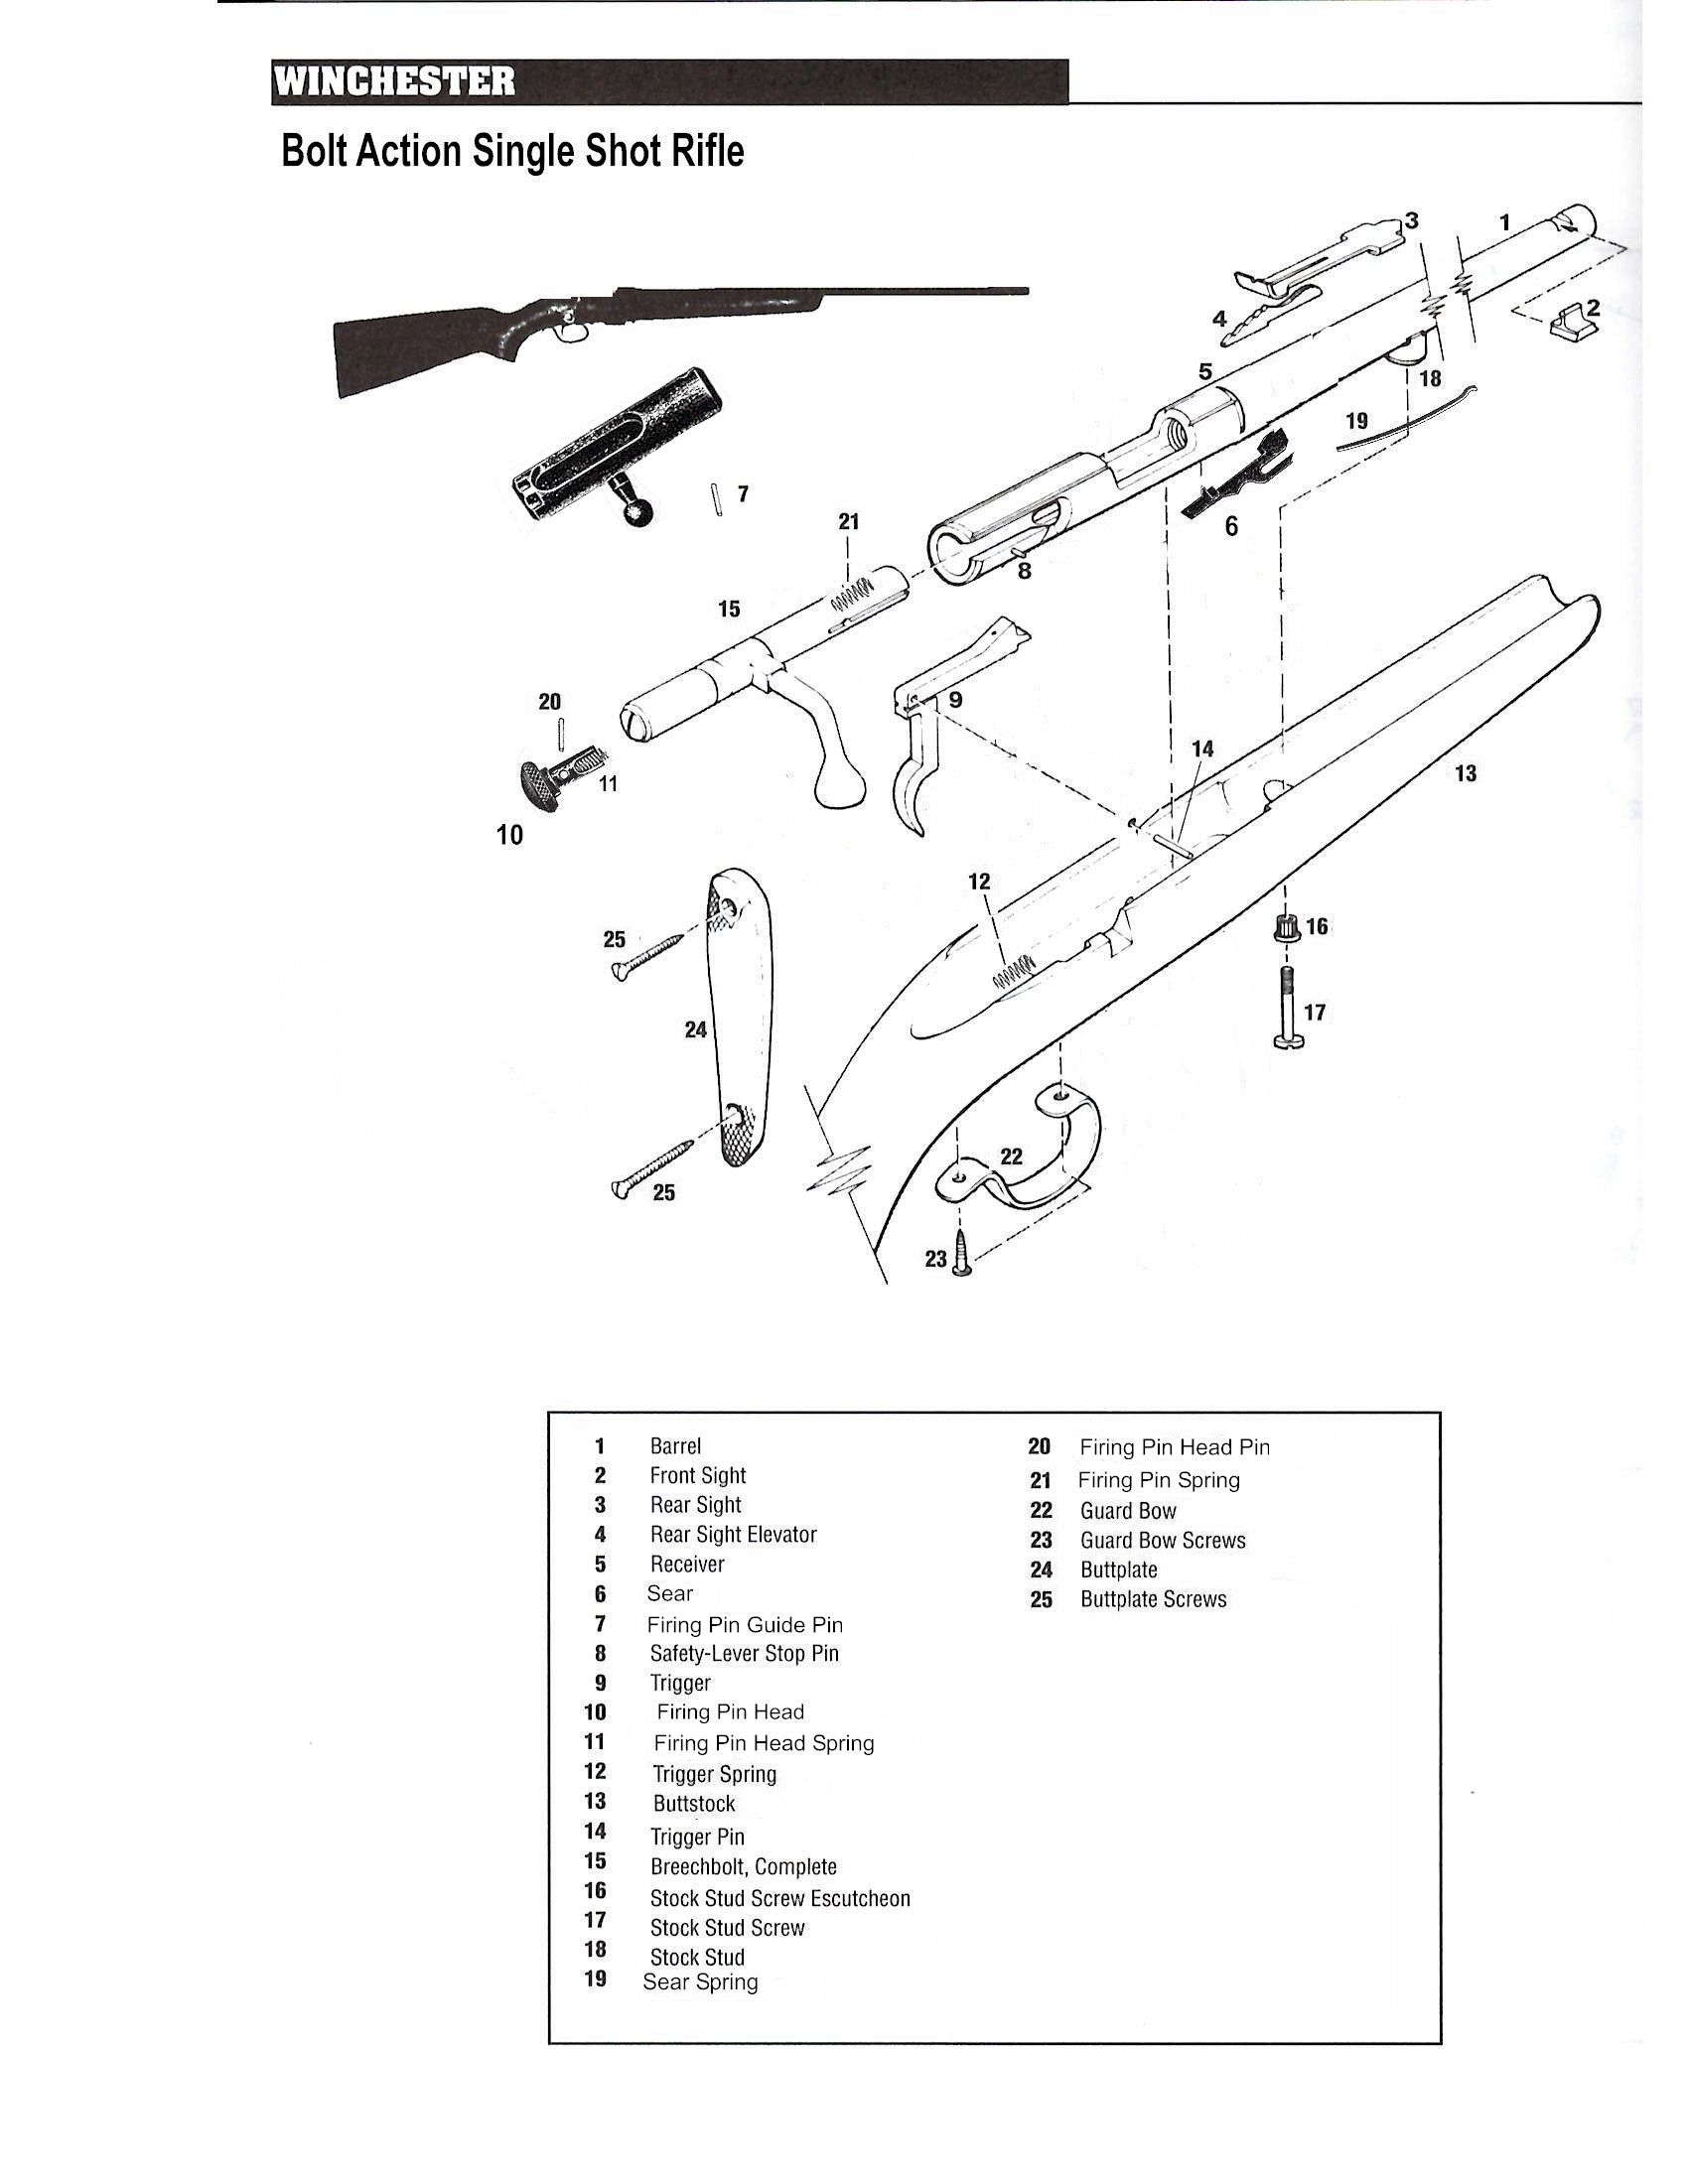 Bolt Action Rifle Diagram Blank